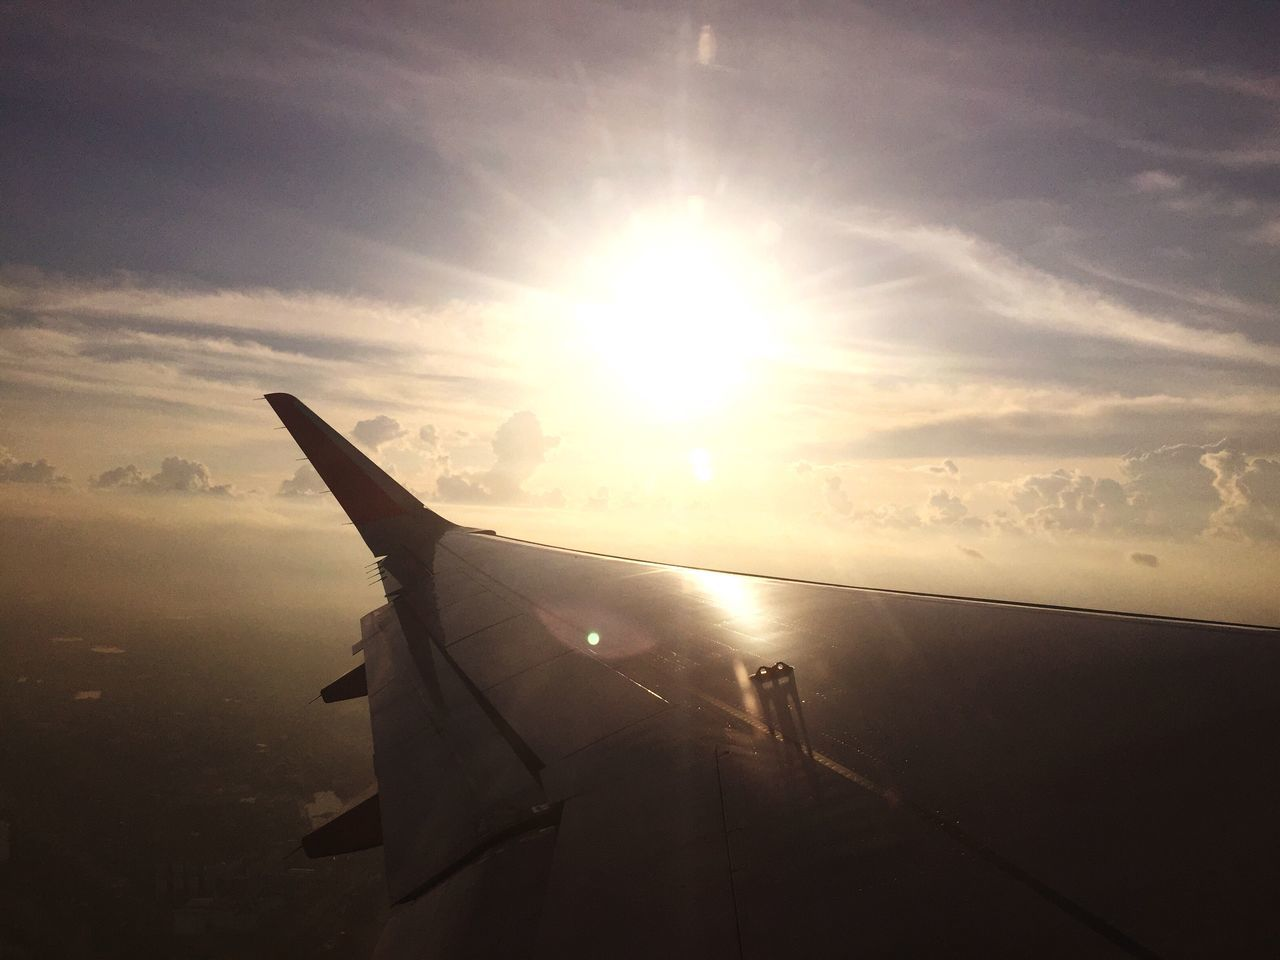 sun, sunbeam, sunset, lens flare, airplane, sky, transportation, sunlight, mode of transport, no people, aircraft wing, air vehicle, nature, cloud - sky, airplane wing, outdoors, close-up, beauty in nature, day